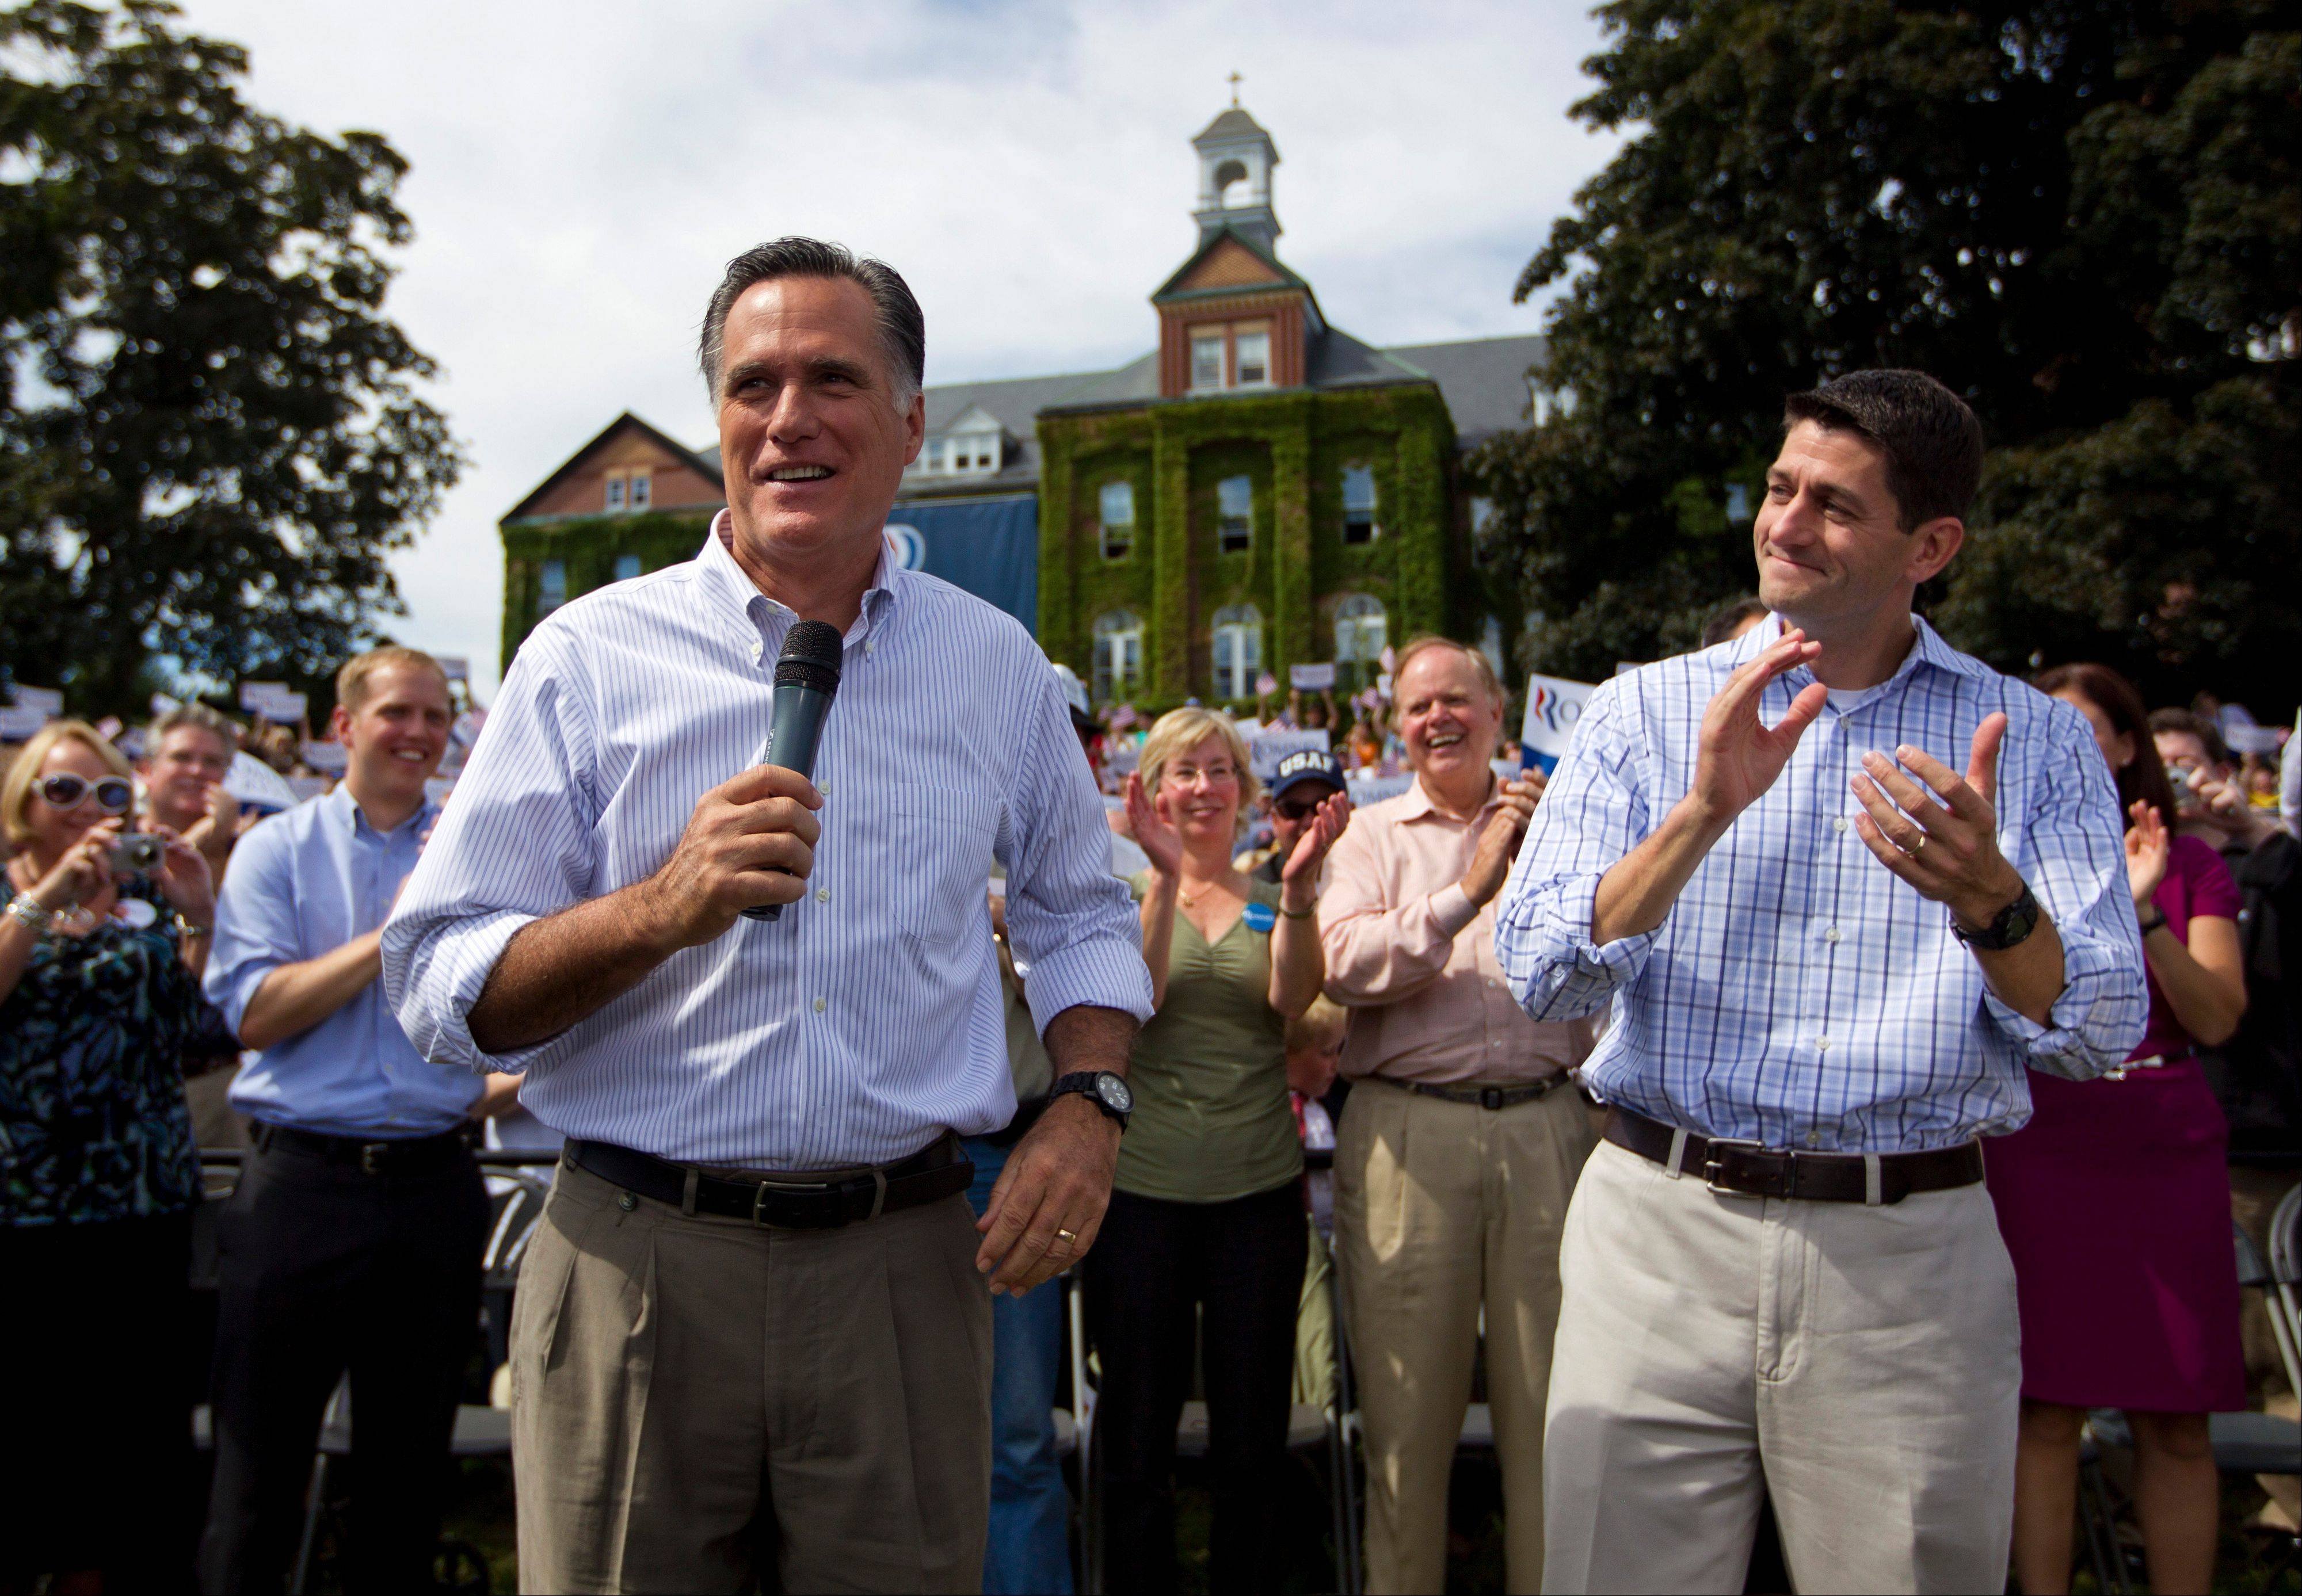 Republican vice presidential candidate, Rep. Paul Ryan, applauds at right as Republican presidential candidate, former Massachusetts Gov. Mitt Romney speaks during a campaign rally Monday in Manchester N.H.